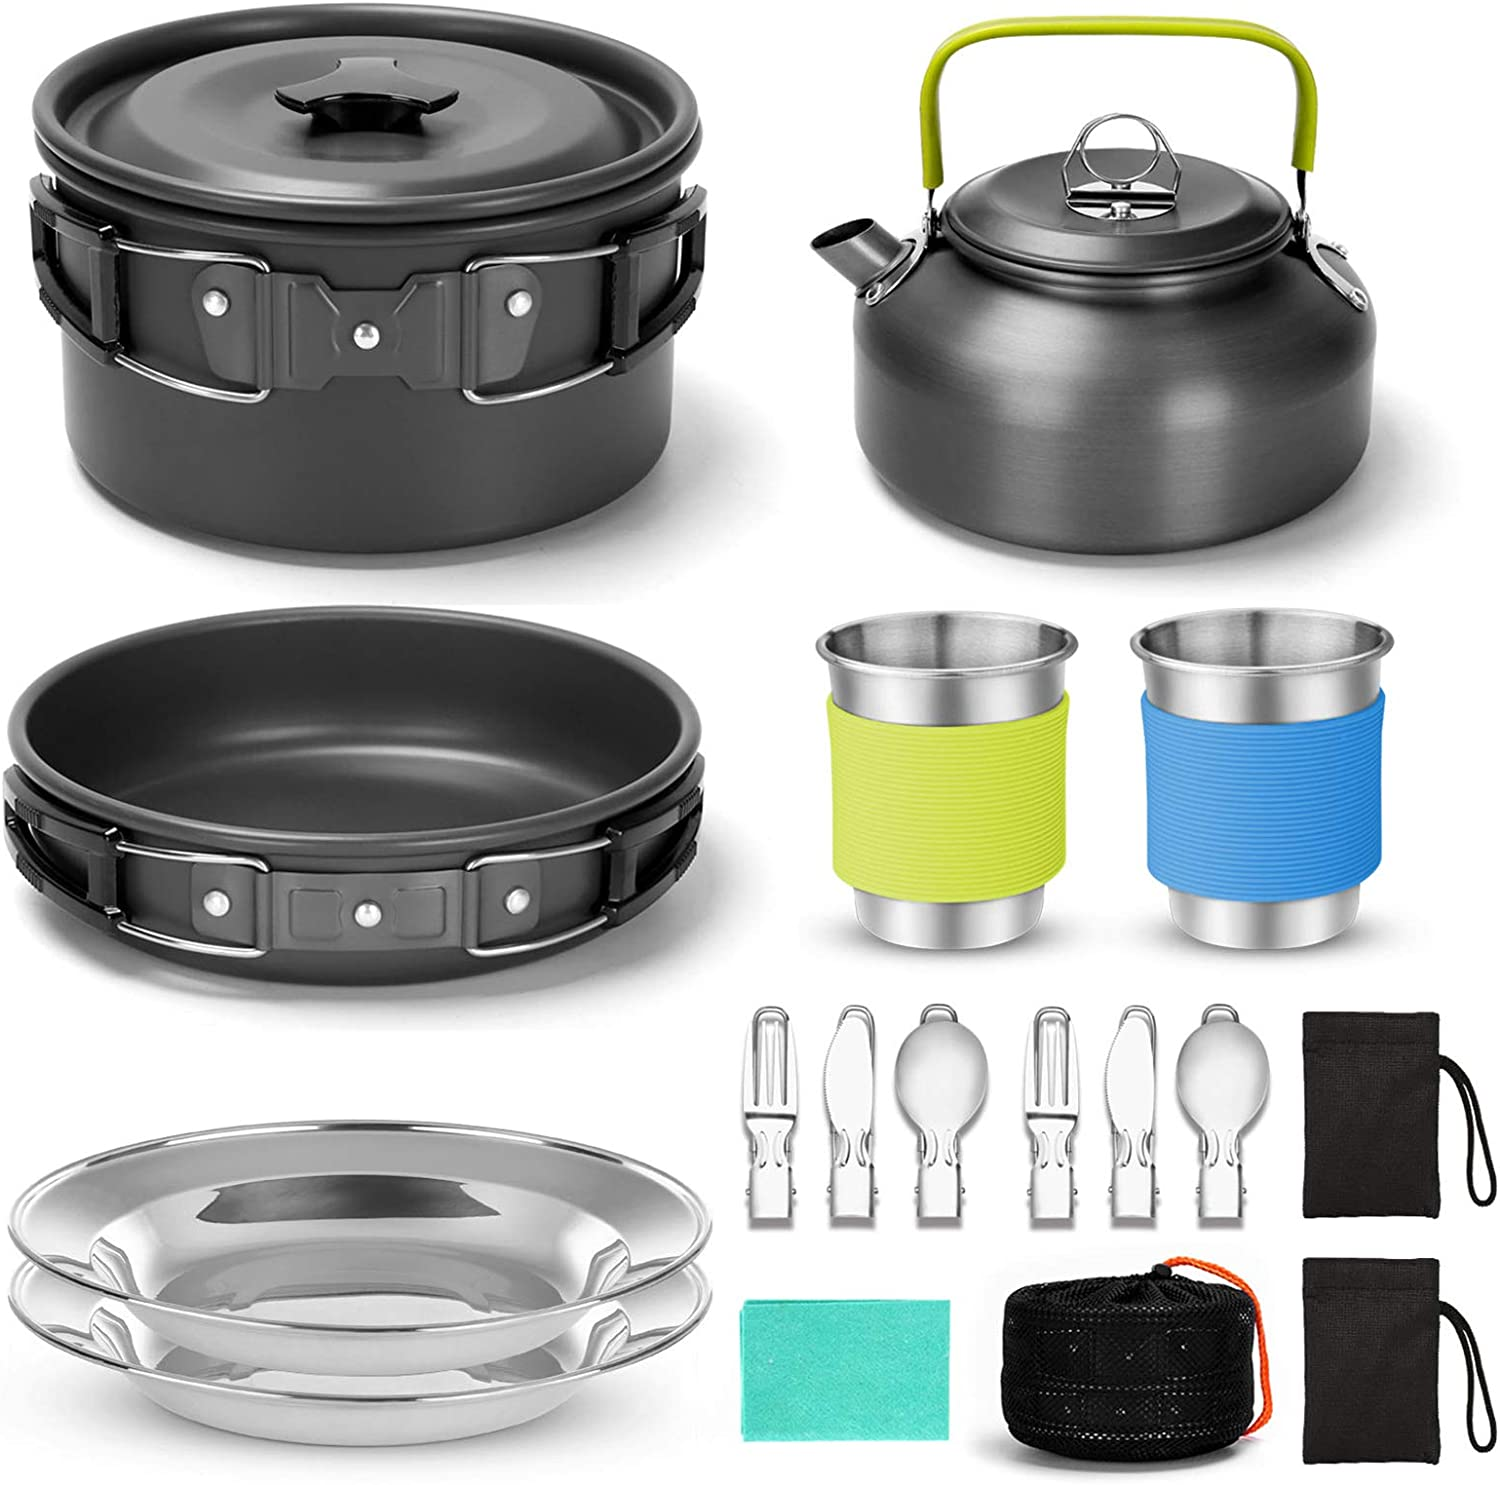 Kettle, Pot, Frying Pan, BPA-Free Bowls, Plates, Spoon Nonstick Lightweight Backpacking Cooking Set Bulin 27//13//11//8//3 PCS Camping Cookware Mess Kit Picnic Outdoor Cook Gear for Family Hiking